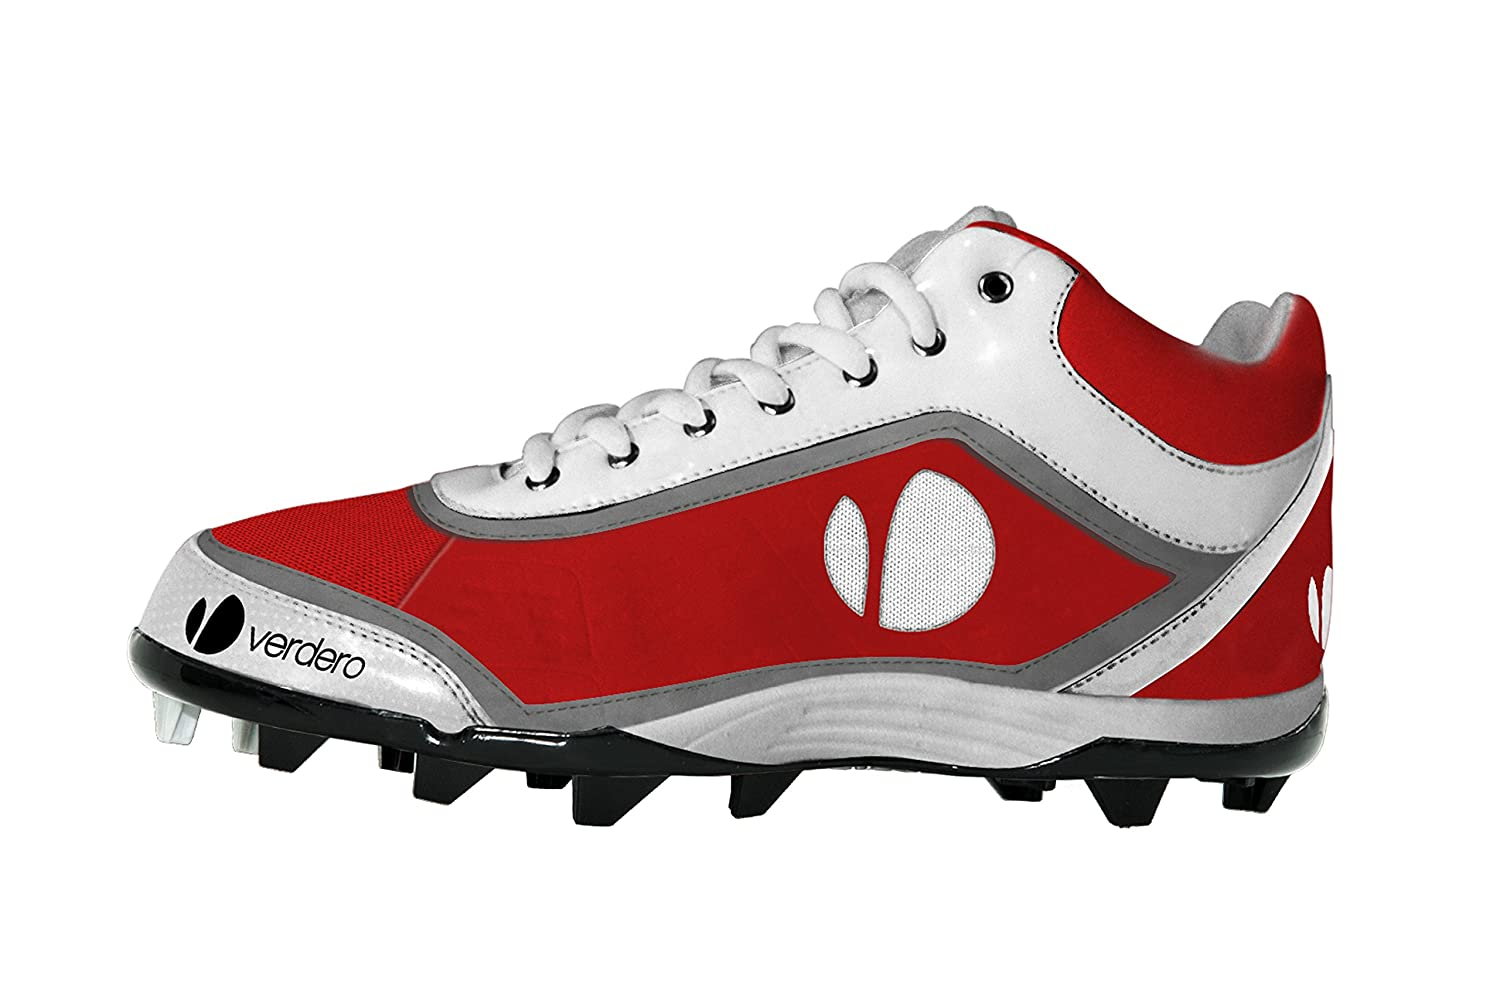 Verdero m-spike Molded Baseball Cleats B004P50P74 Size 14|レッド/ホワイト レッド/ホワイト Size 14